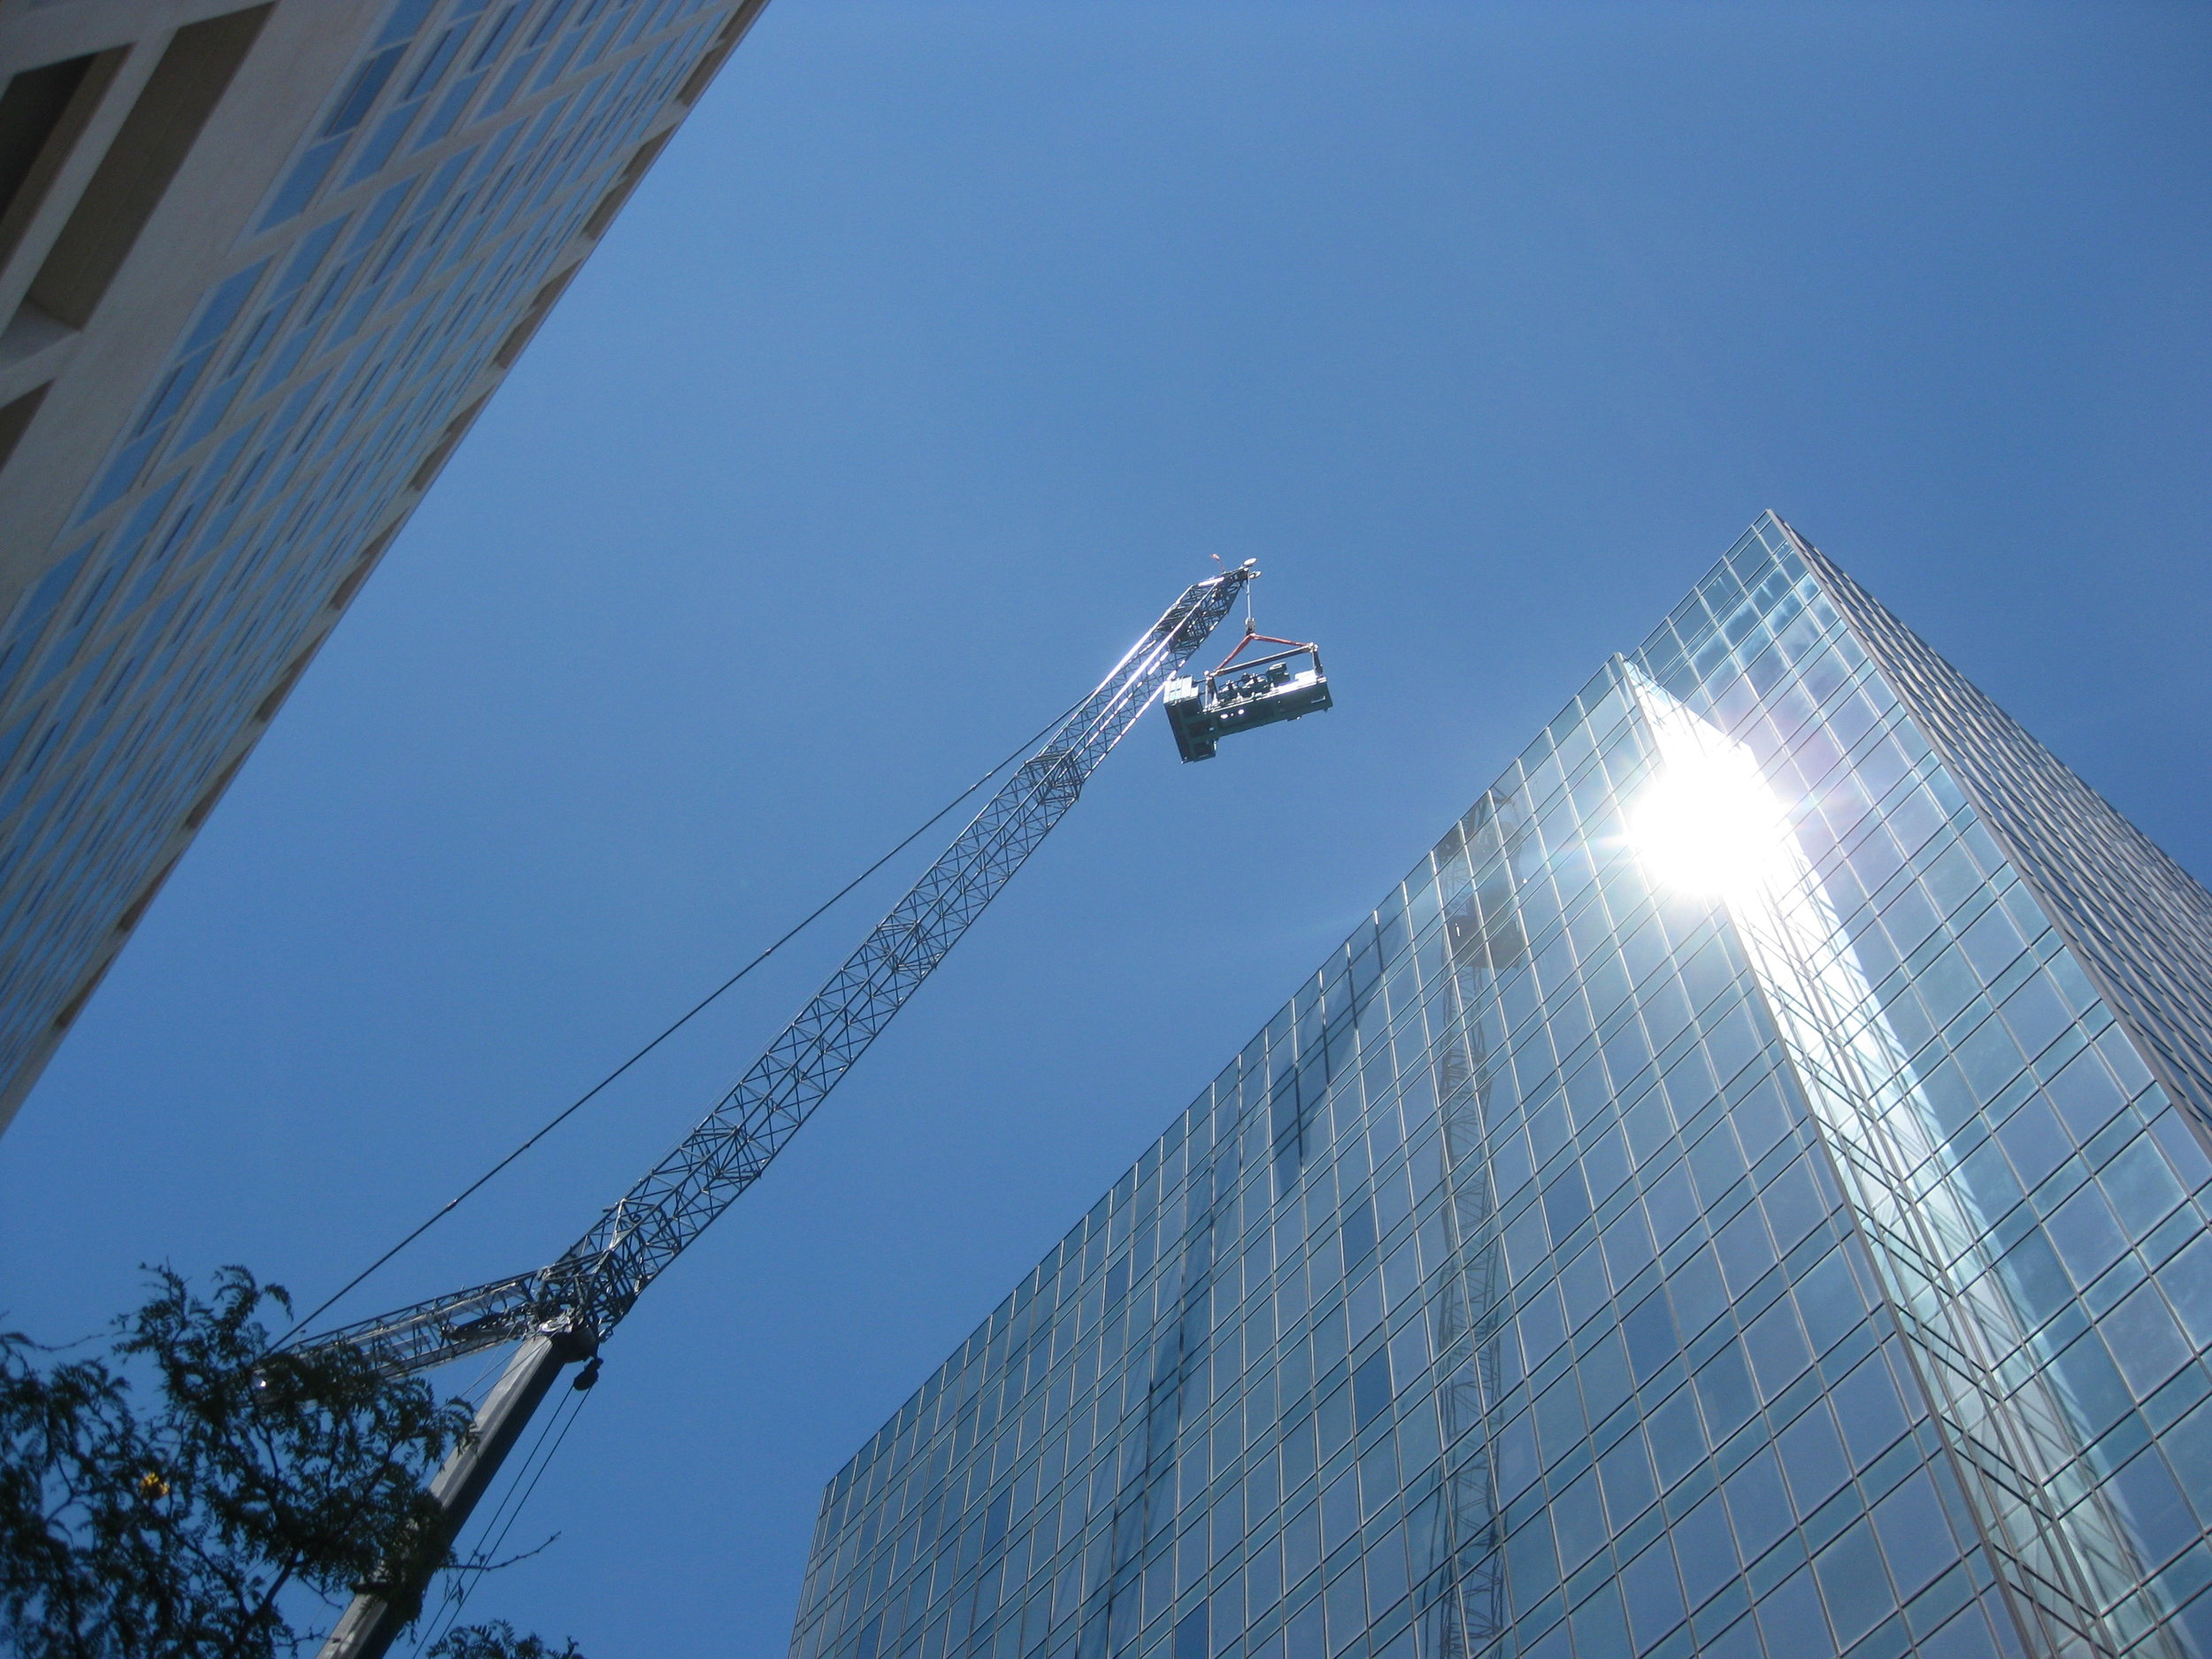 Crane installs heavy equipment on roof